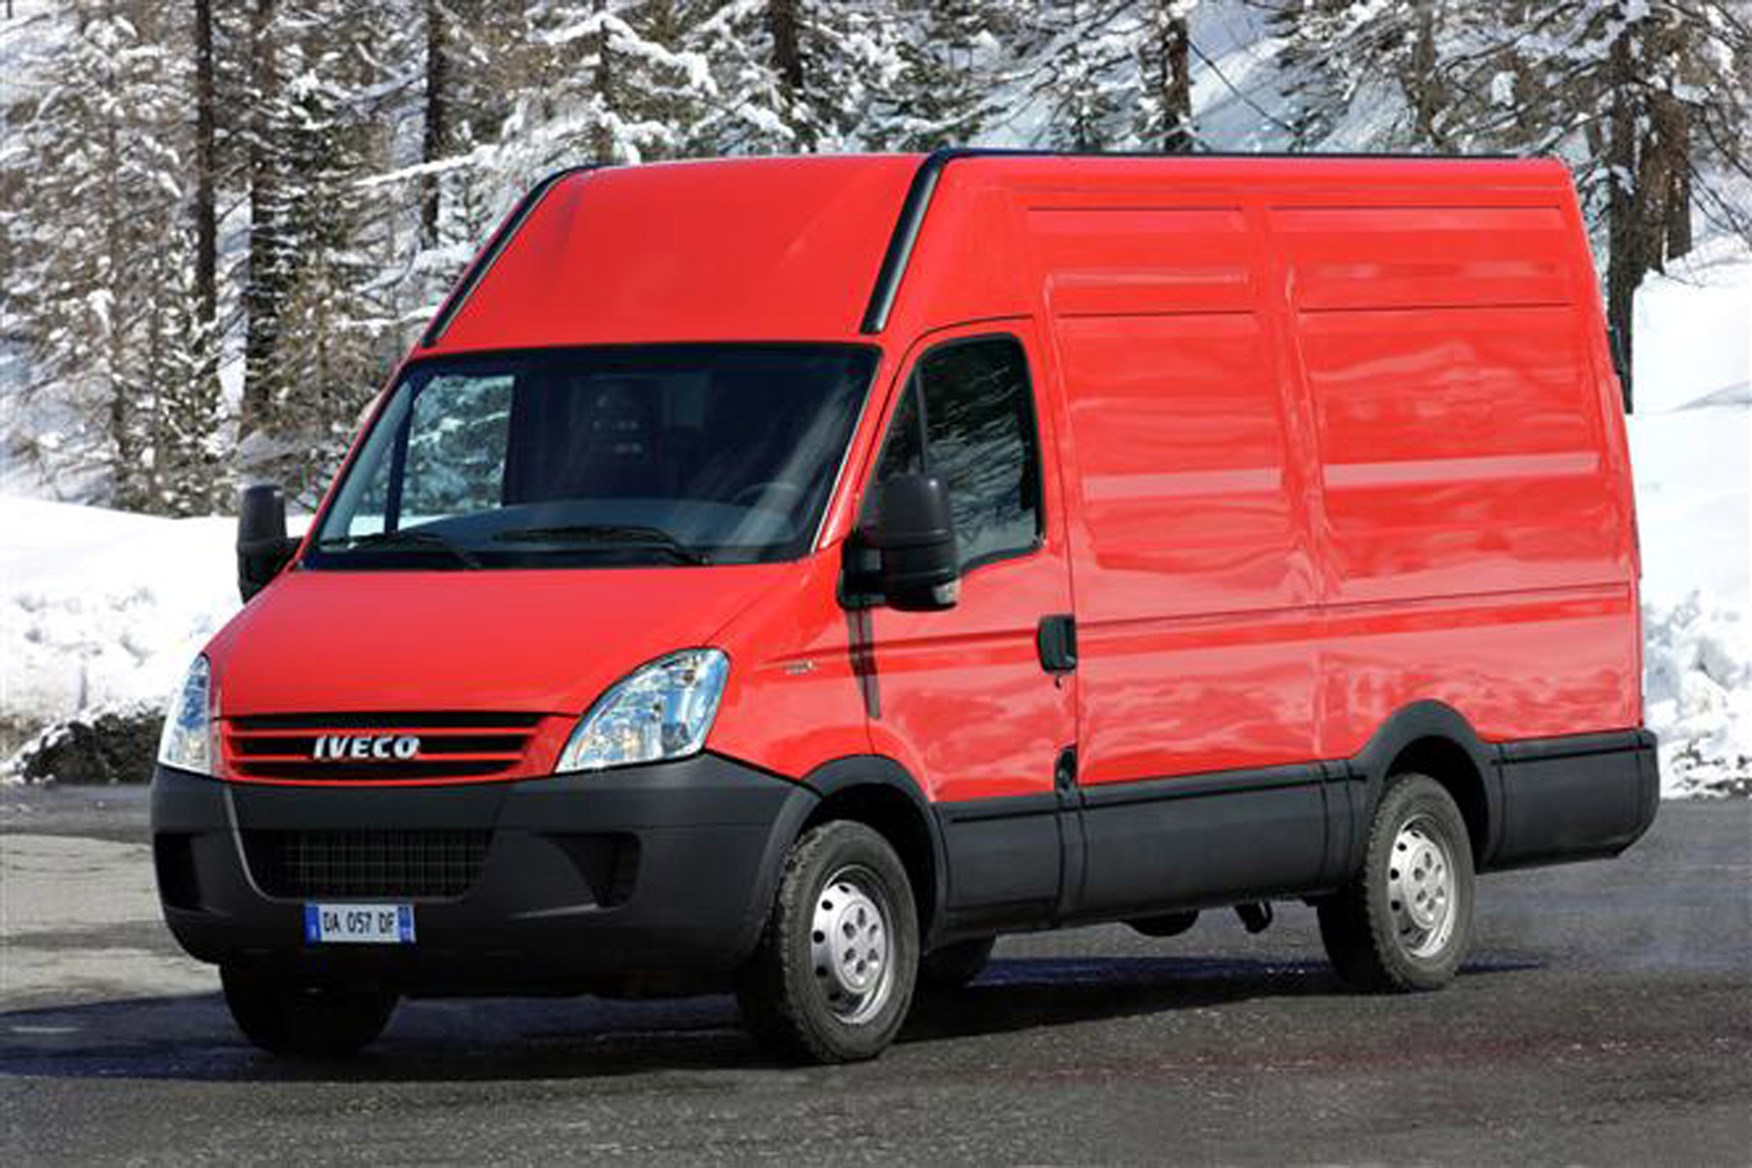 Iveco Daily 2006-2009 review on Parkers Vans - exterior